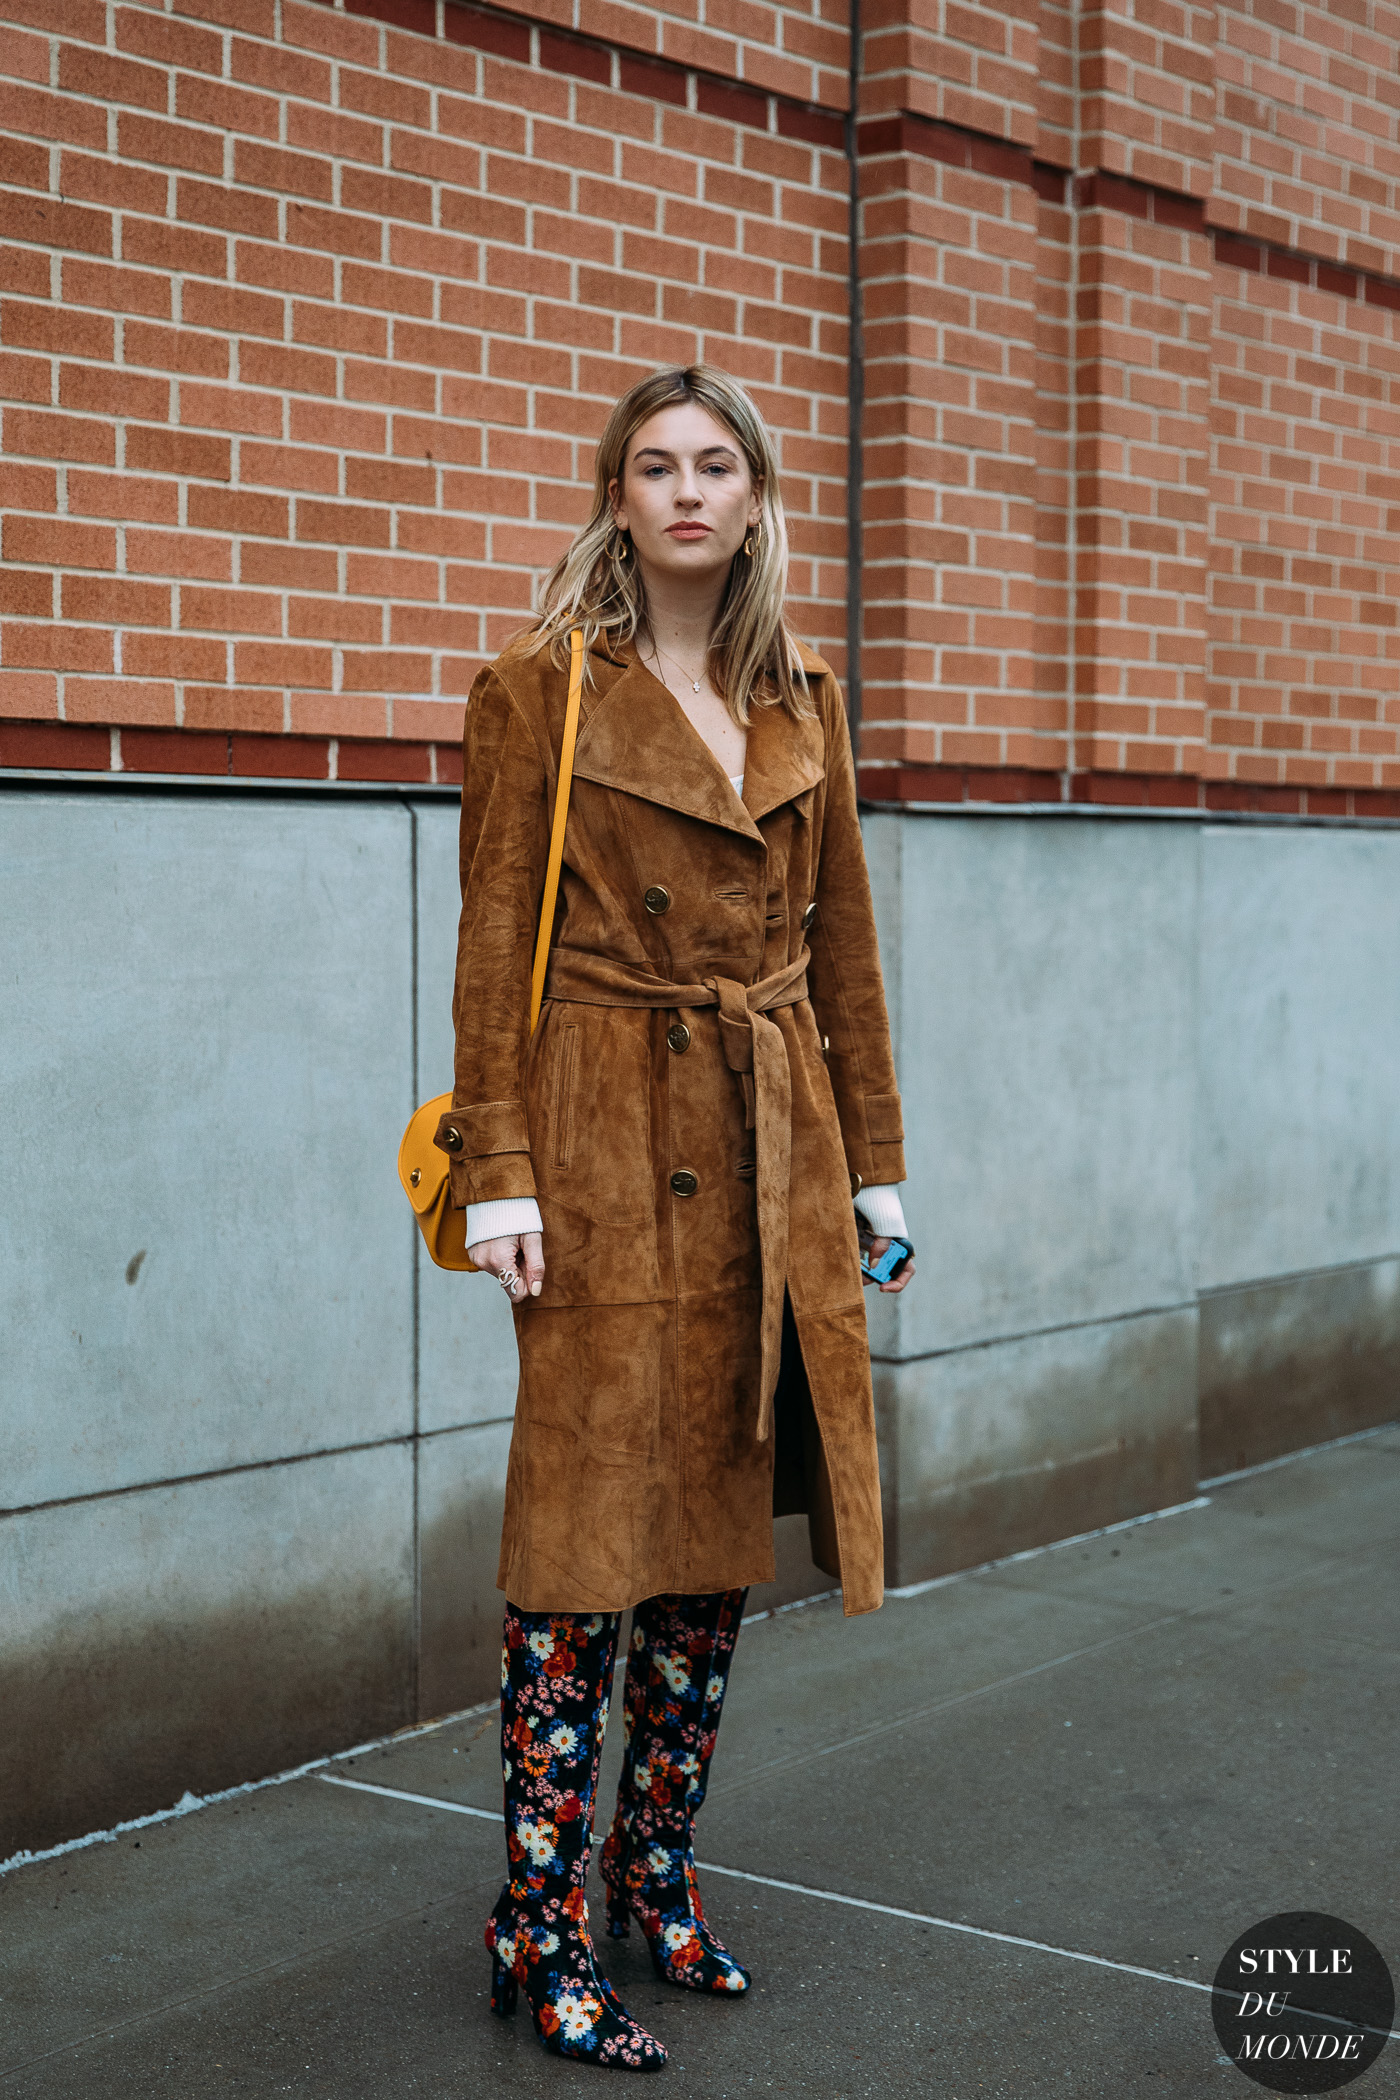 New York Fall 2020 Street Style: Camille Charriere - STYLE